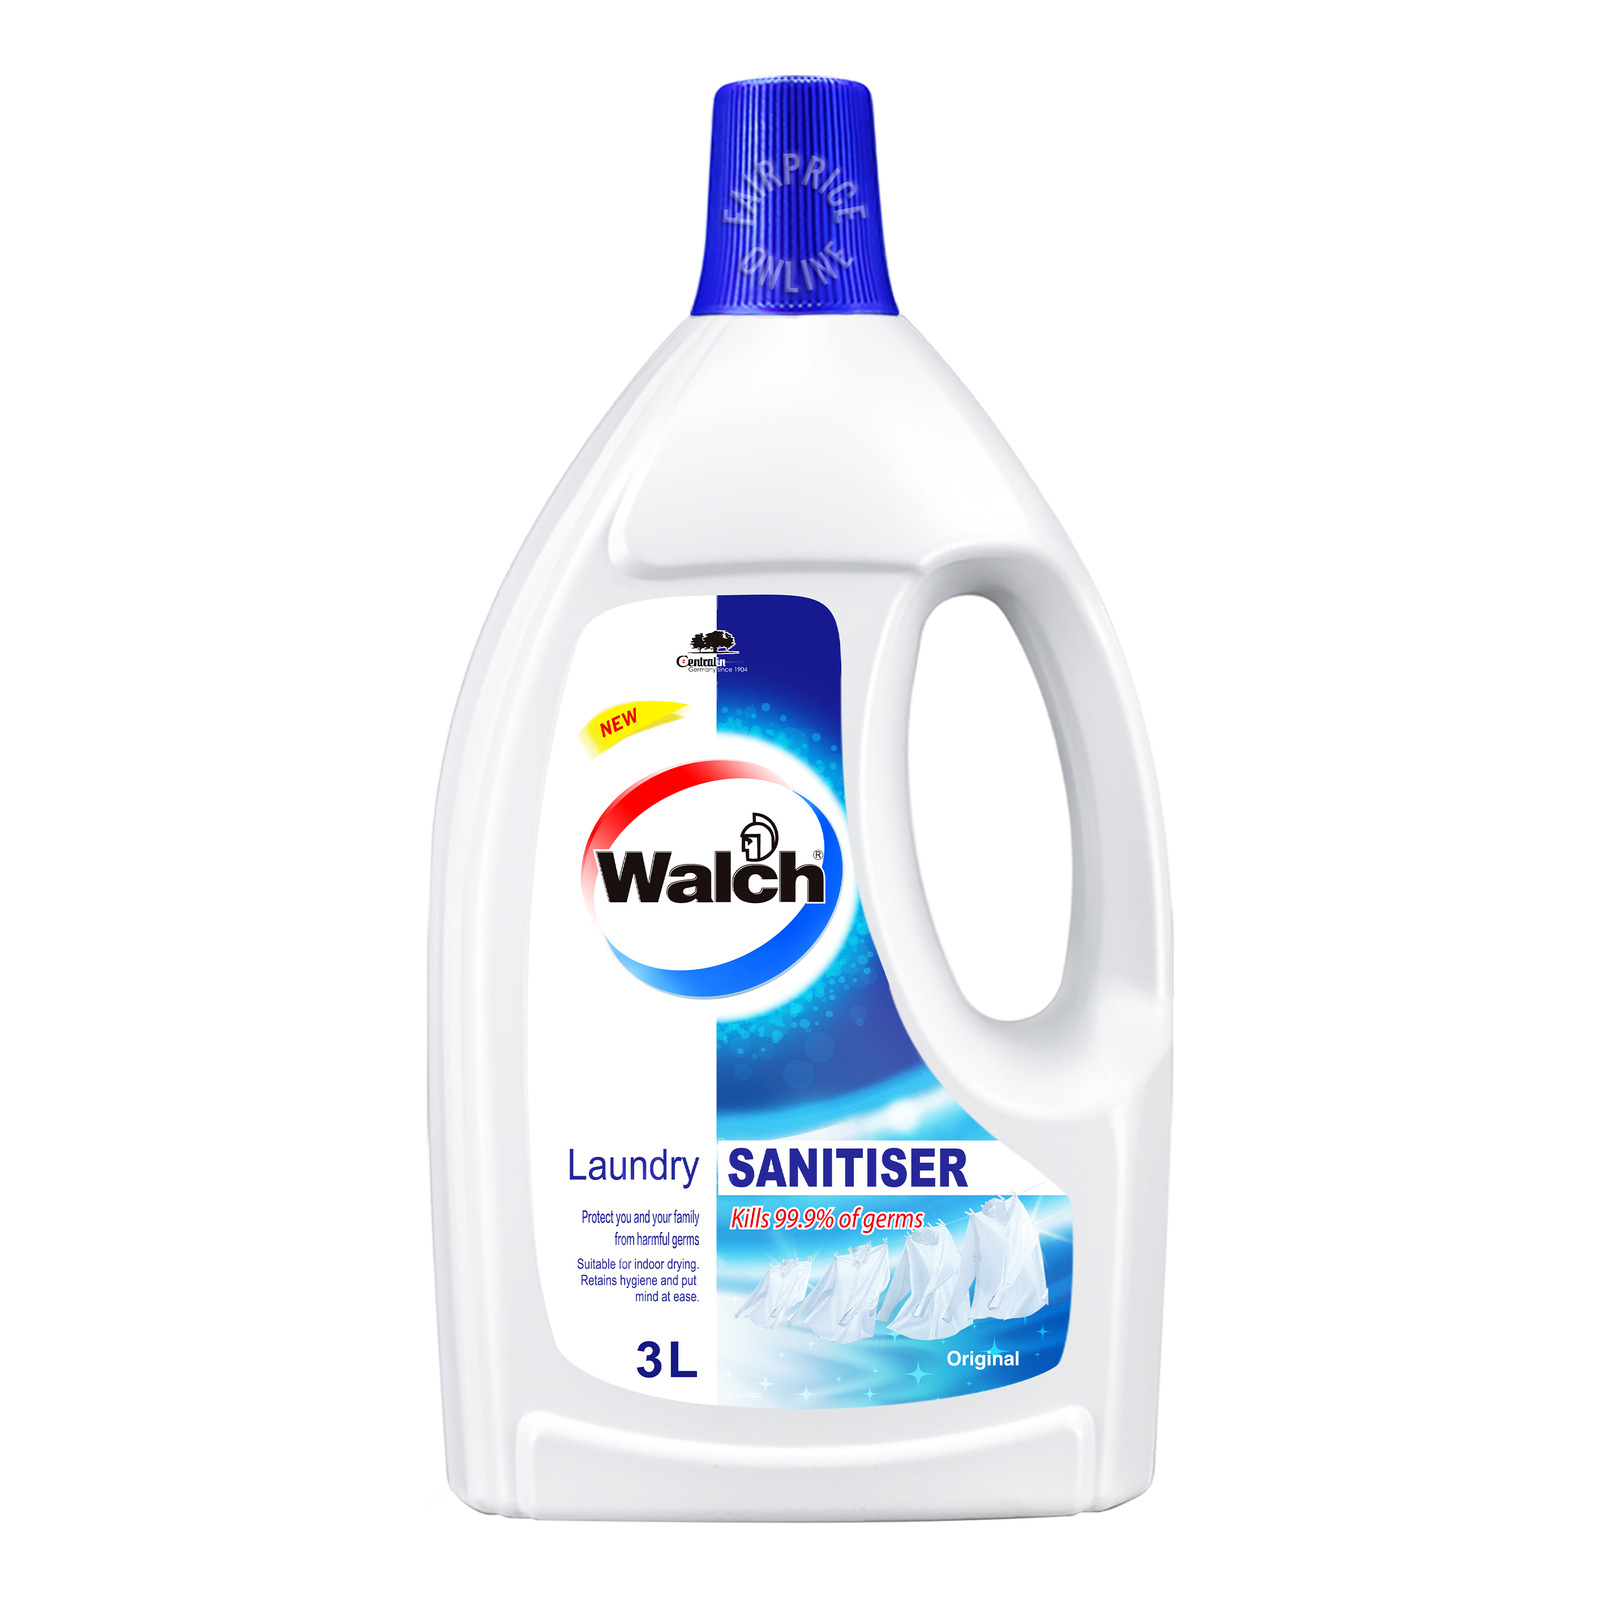 Walch Laundry Sanitizer - Original